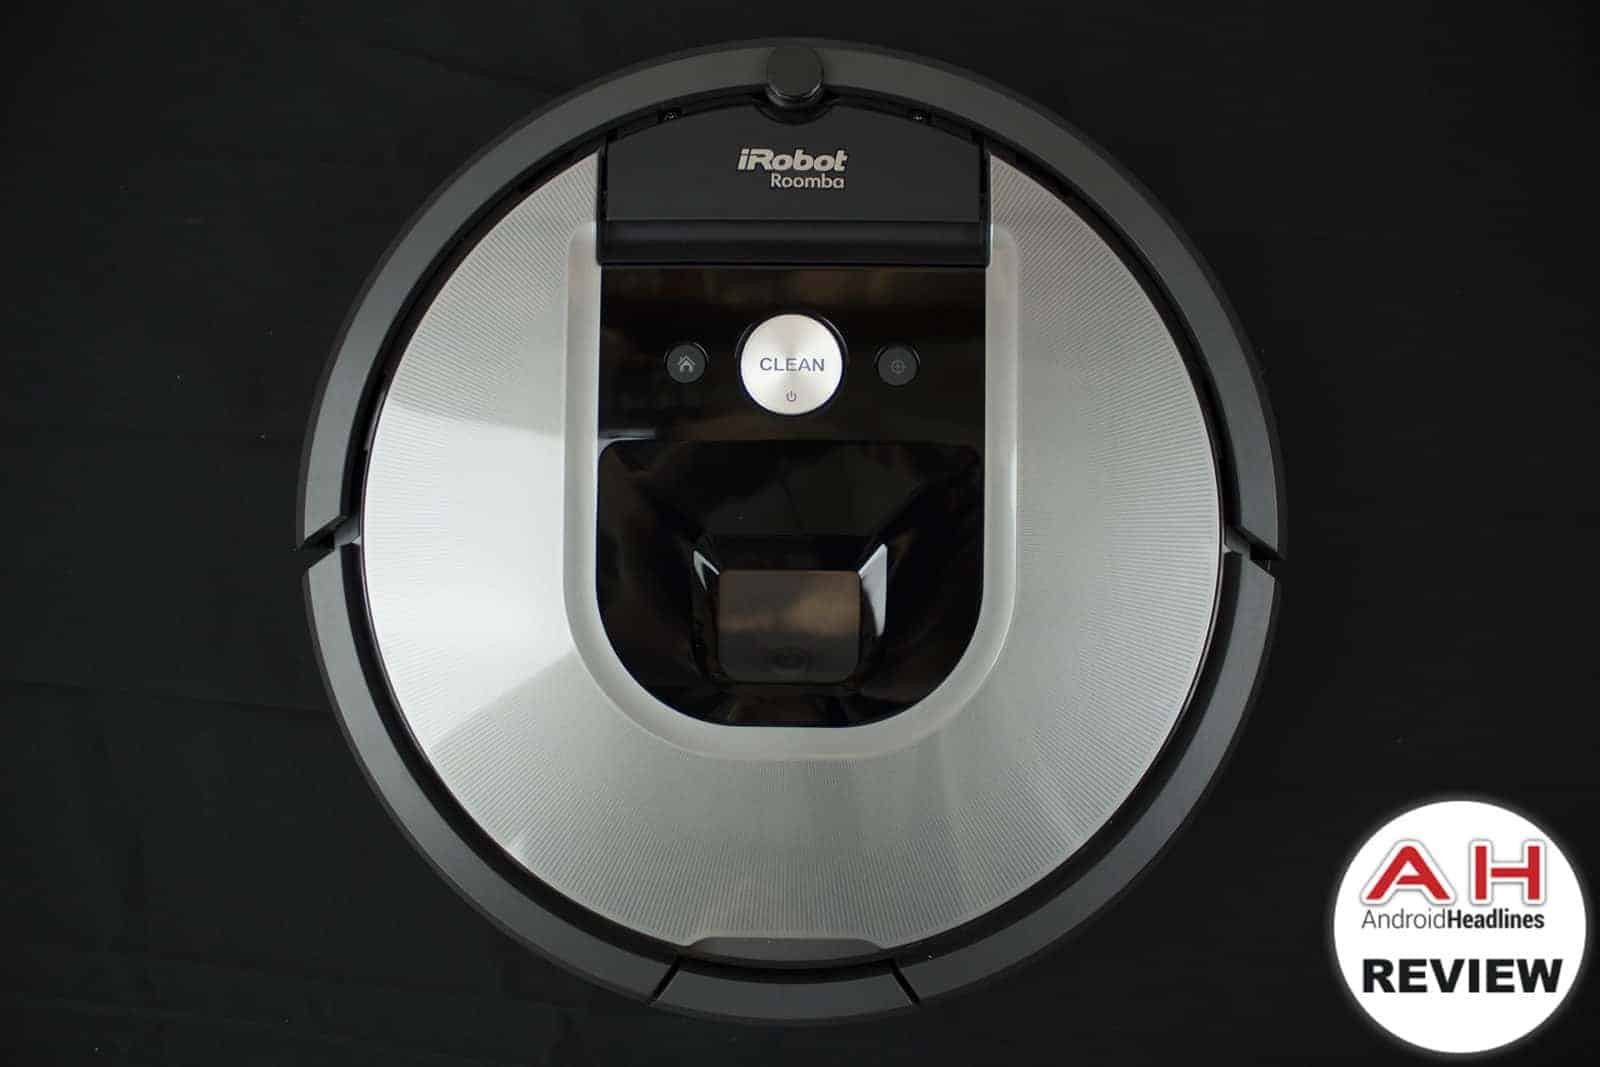 irobot roomba 960 review a feature packed quality clean android news. Black Bedroom Furniture Sets. Home Design Ideas